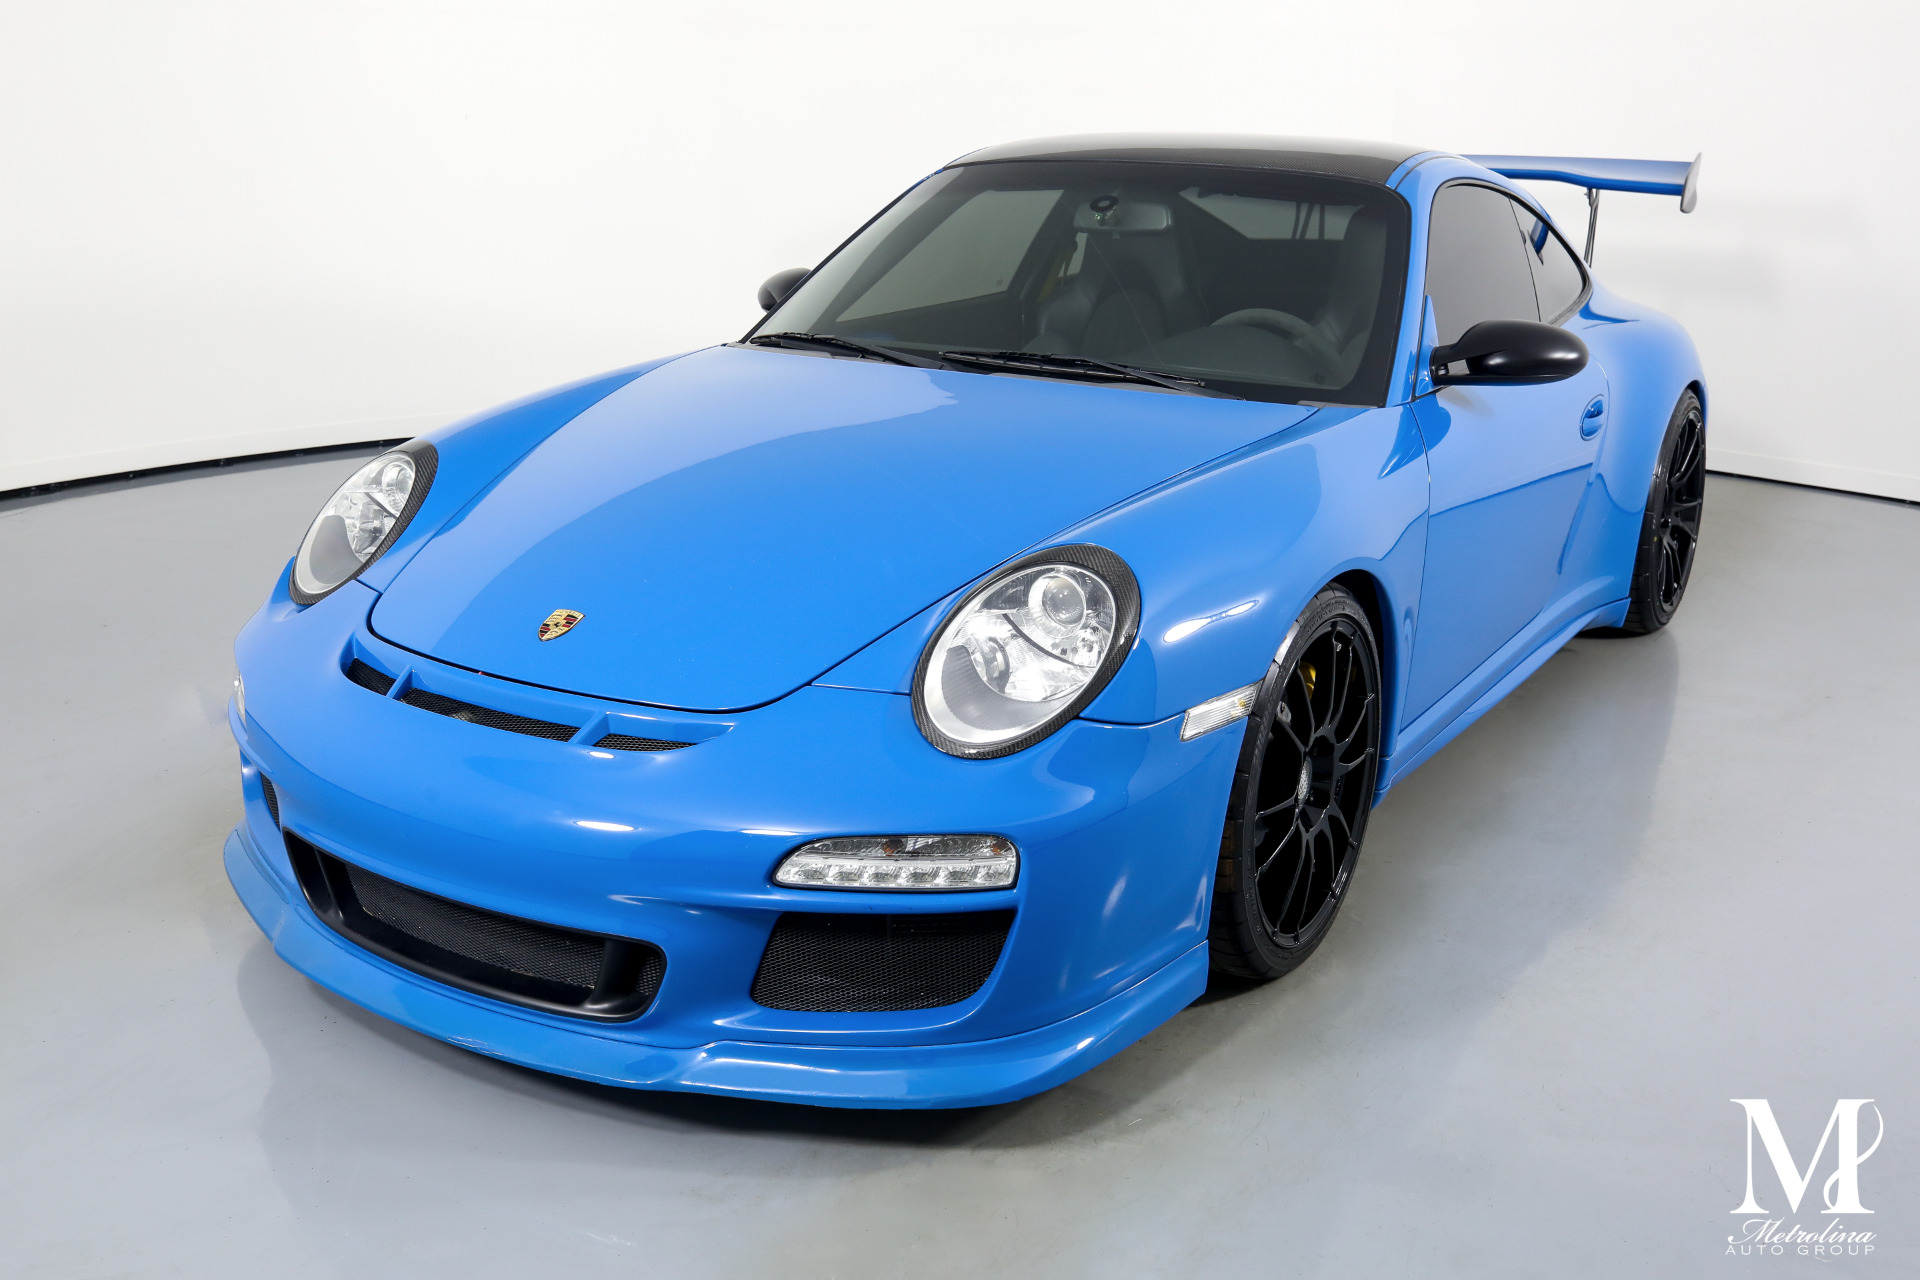 Used 2007 Porsche 911 GT3 for sale $99,996 at Metrolina Auto Group in Charlotte NC 28217 - 4